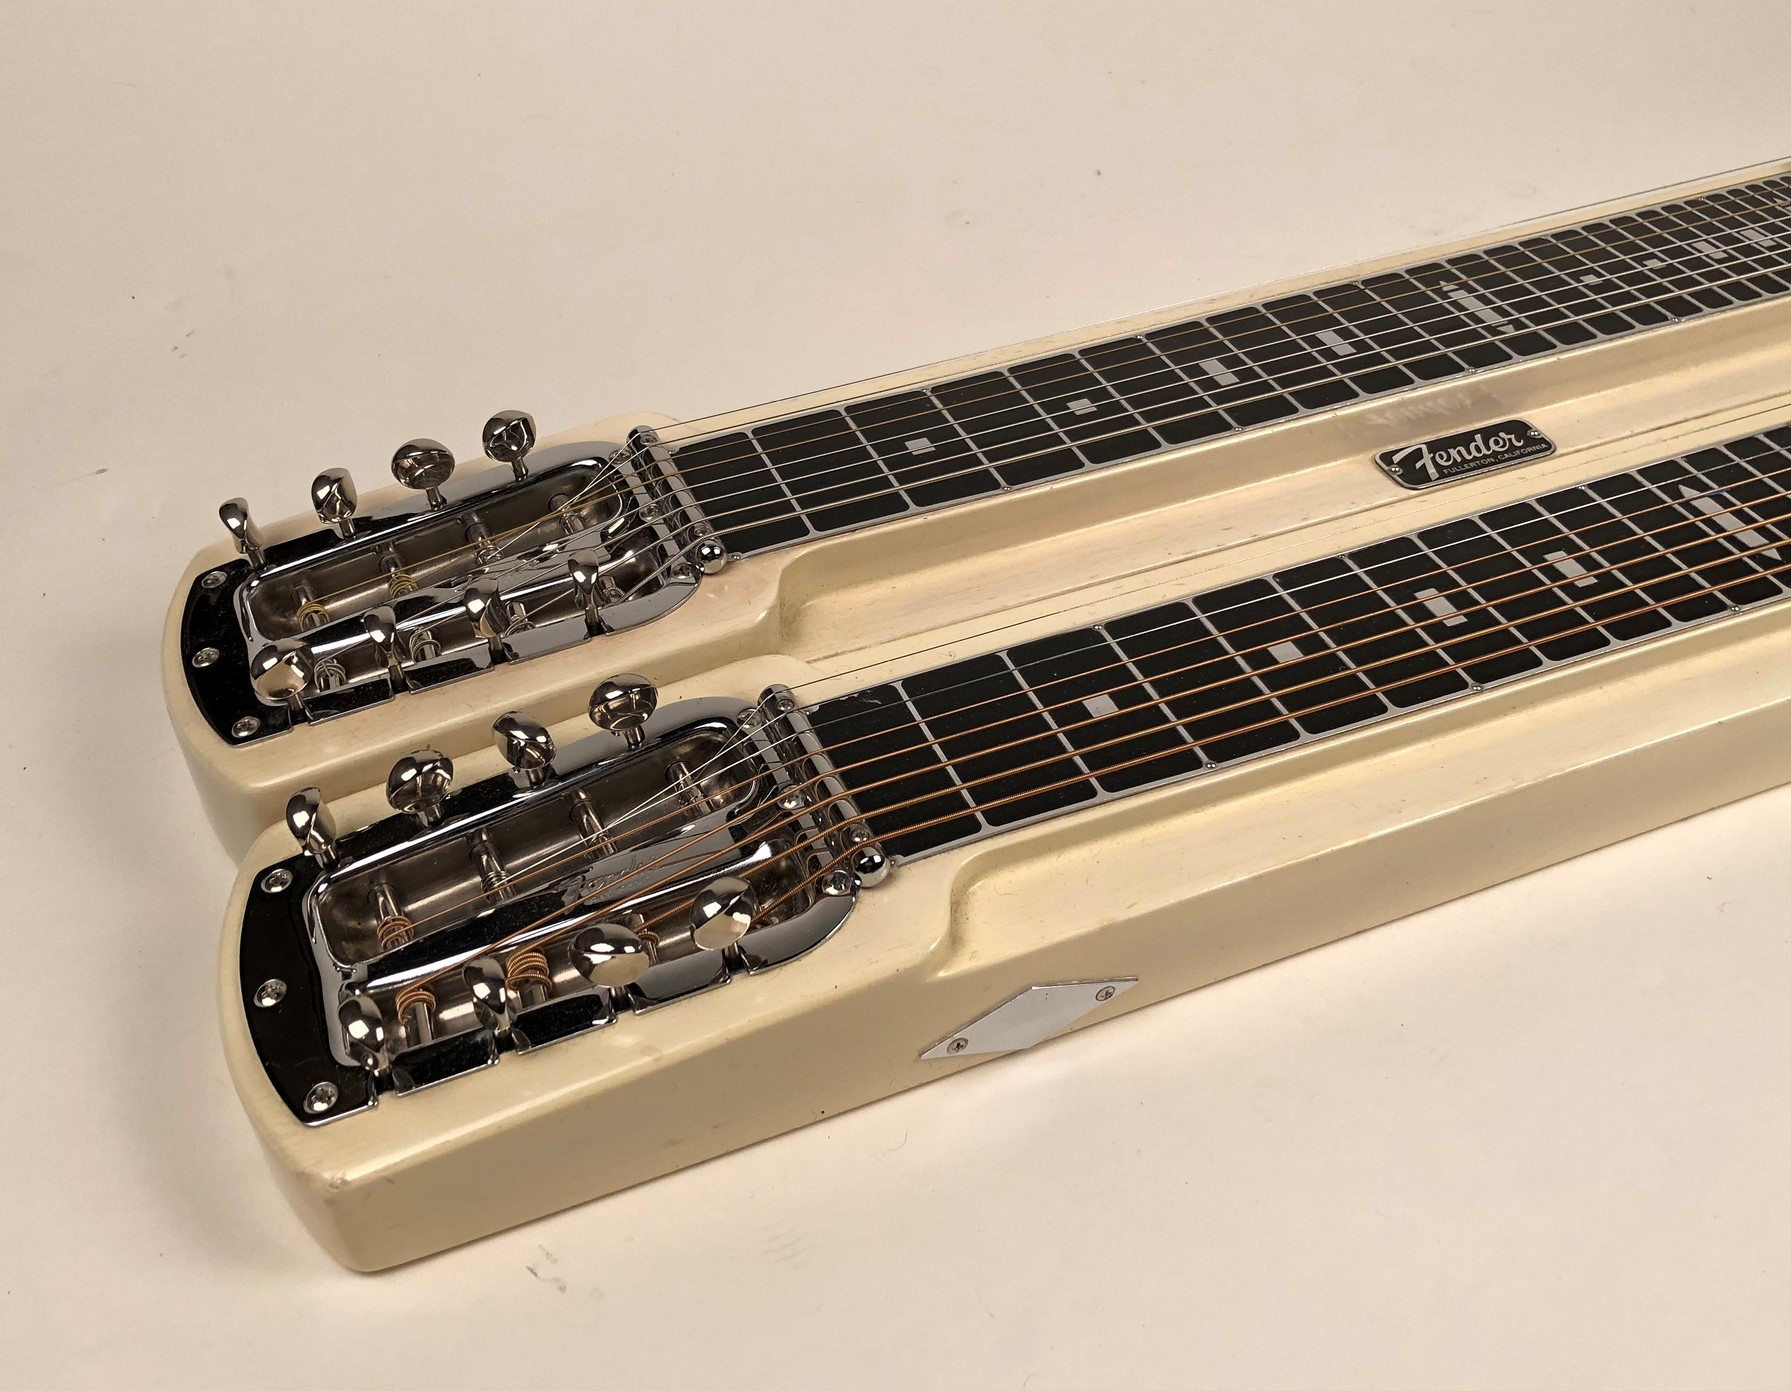 Double Neck Vs Single Neck Guitar Fender Stringmaster Double 8 1957 Blond Guitar For Sale